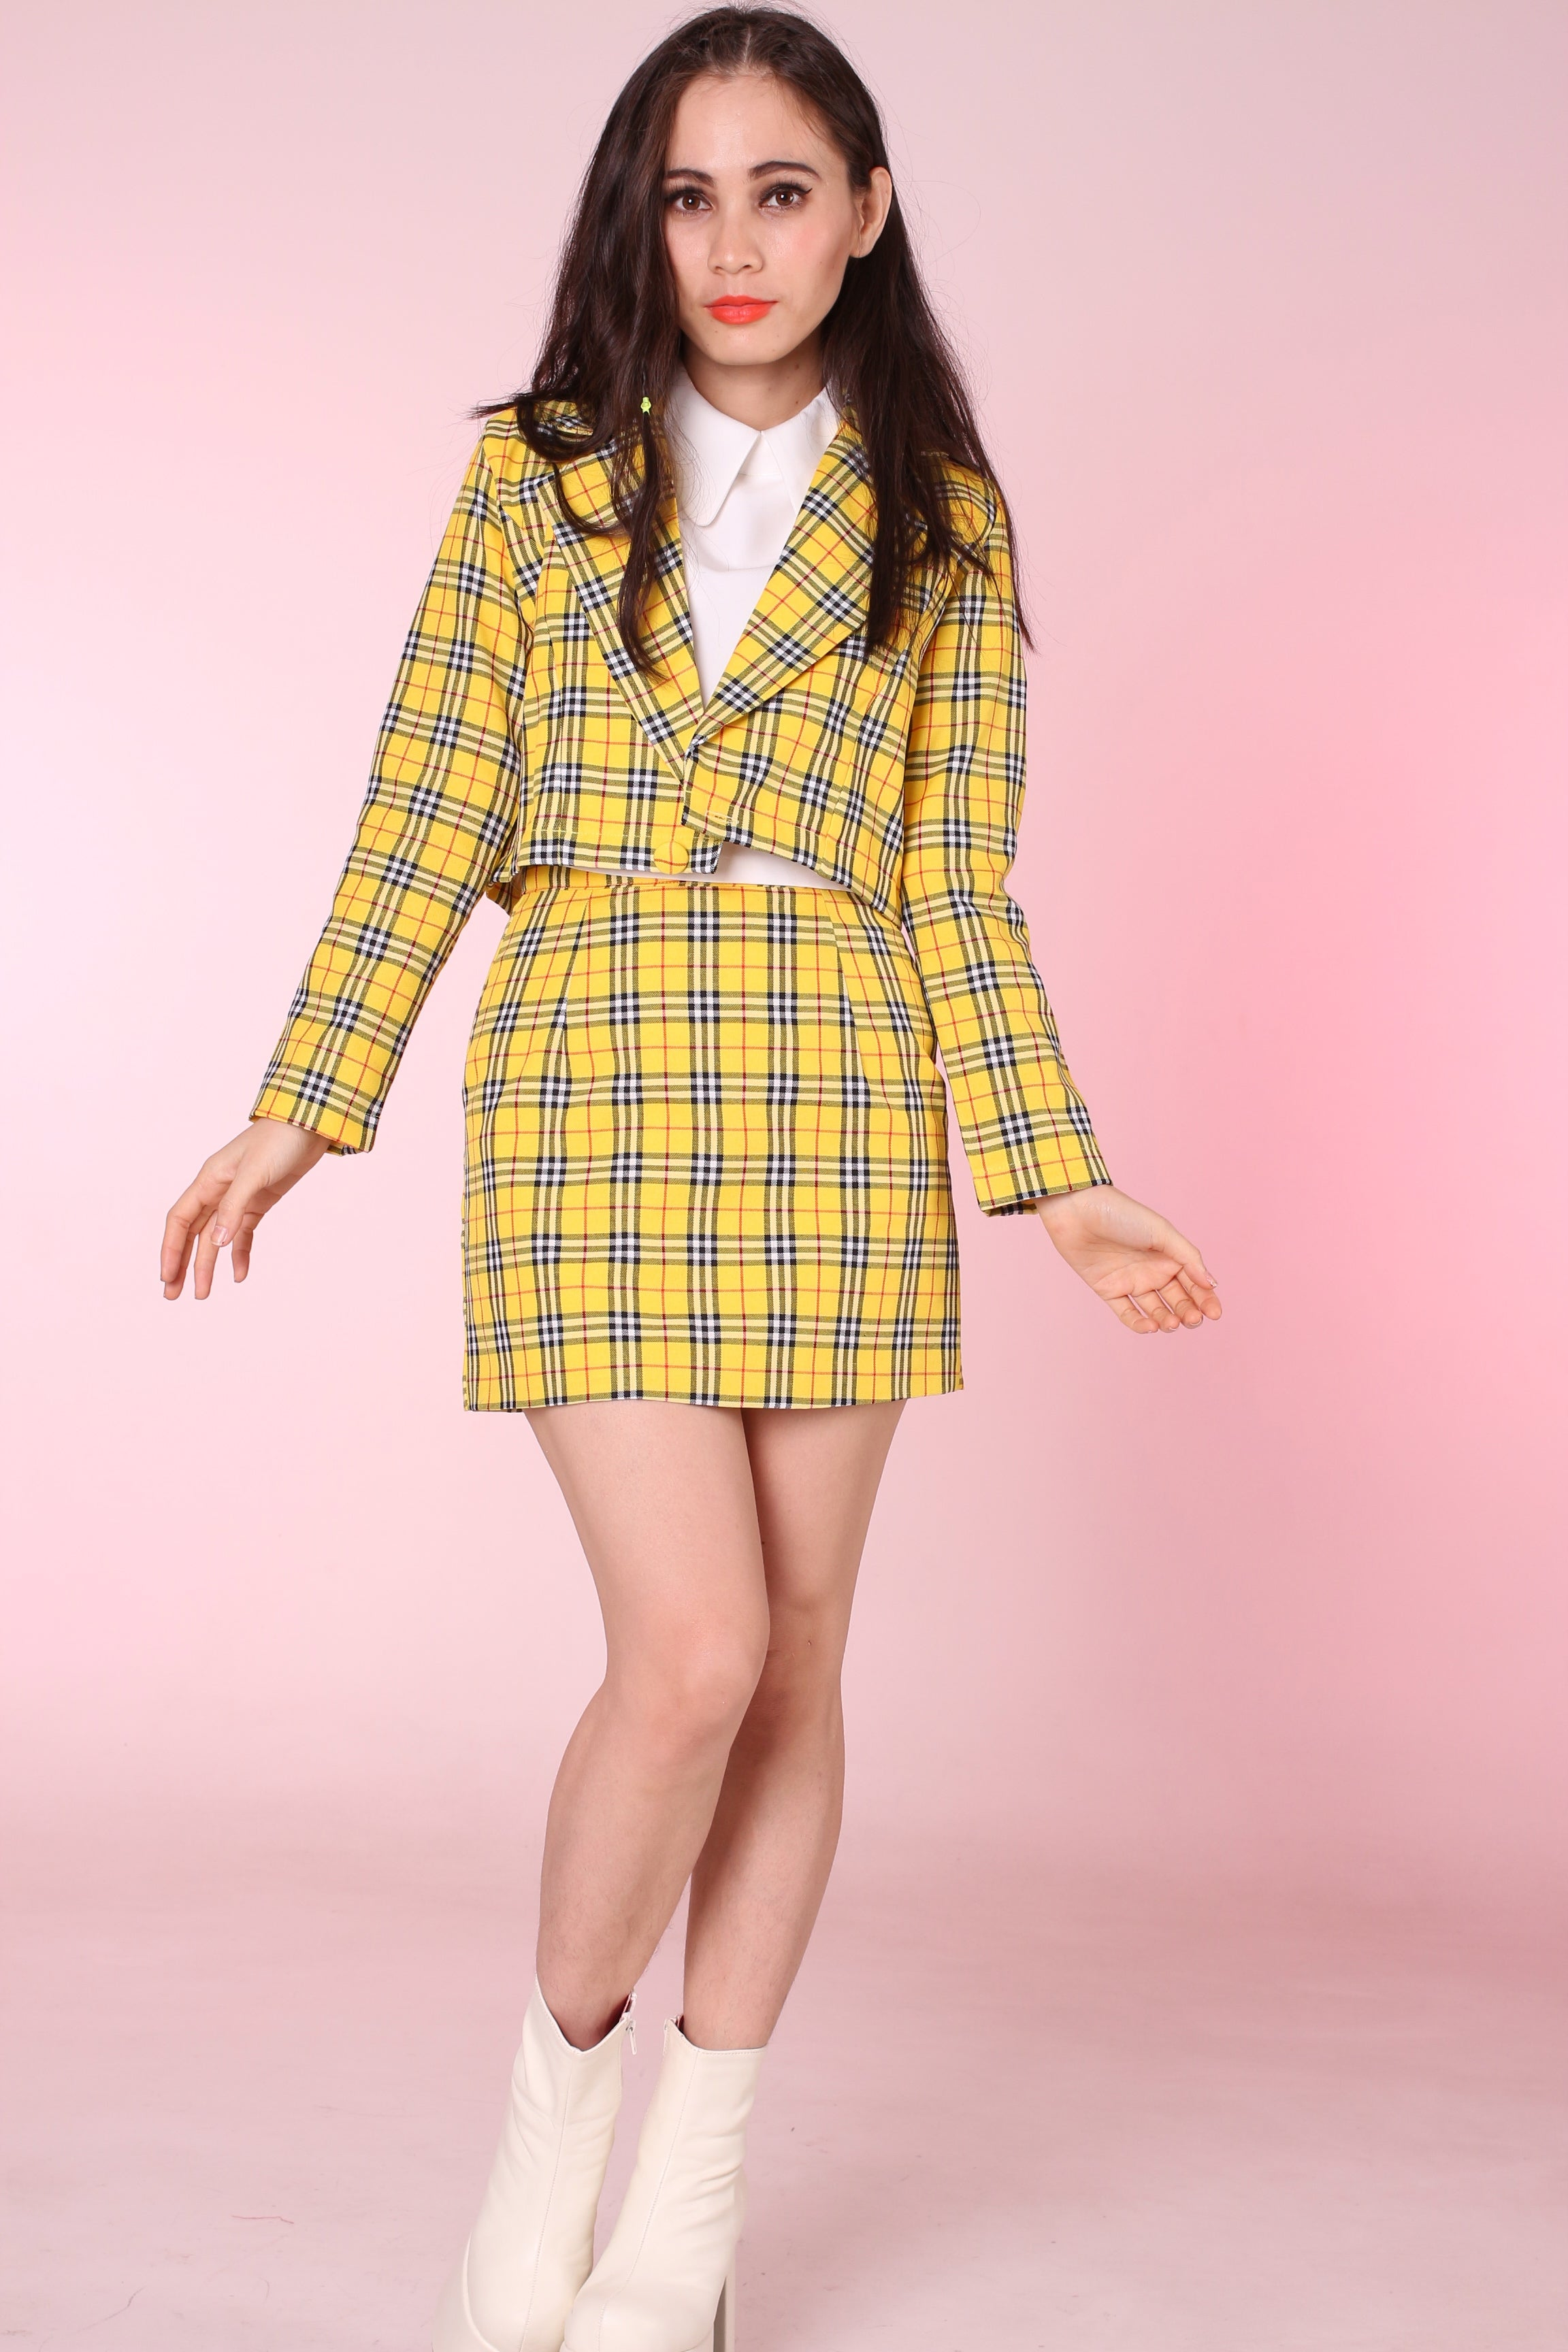 Please allow 3 weeks for delivery if you need this for event much sooner please contact glittersfordinner@senonsdownload-gv.cf for express delivery. XS Bust 84cm (33inch), Shoulders 35cm Length of Jacket 44cm, Length of sleeves 53cm.